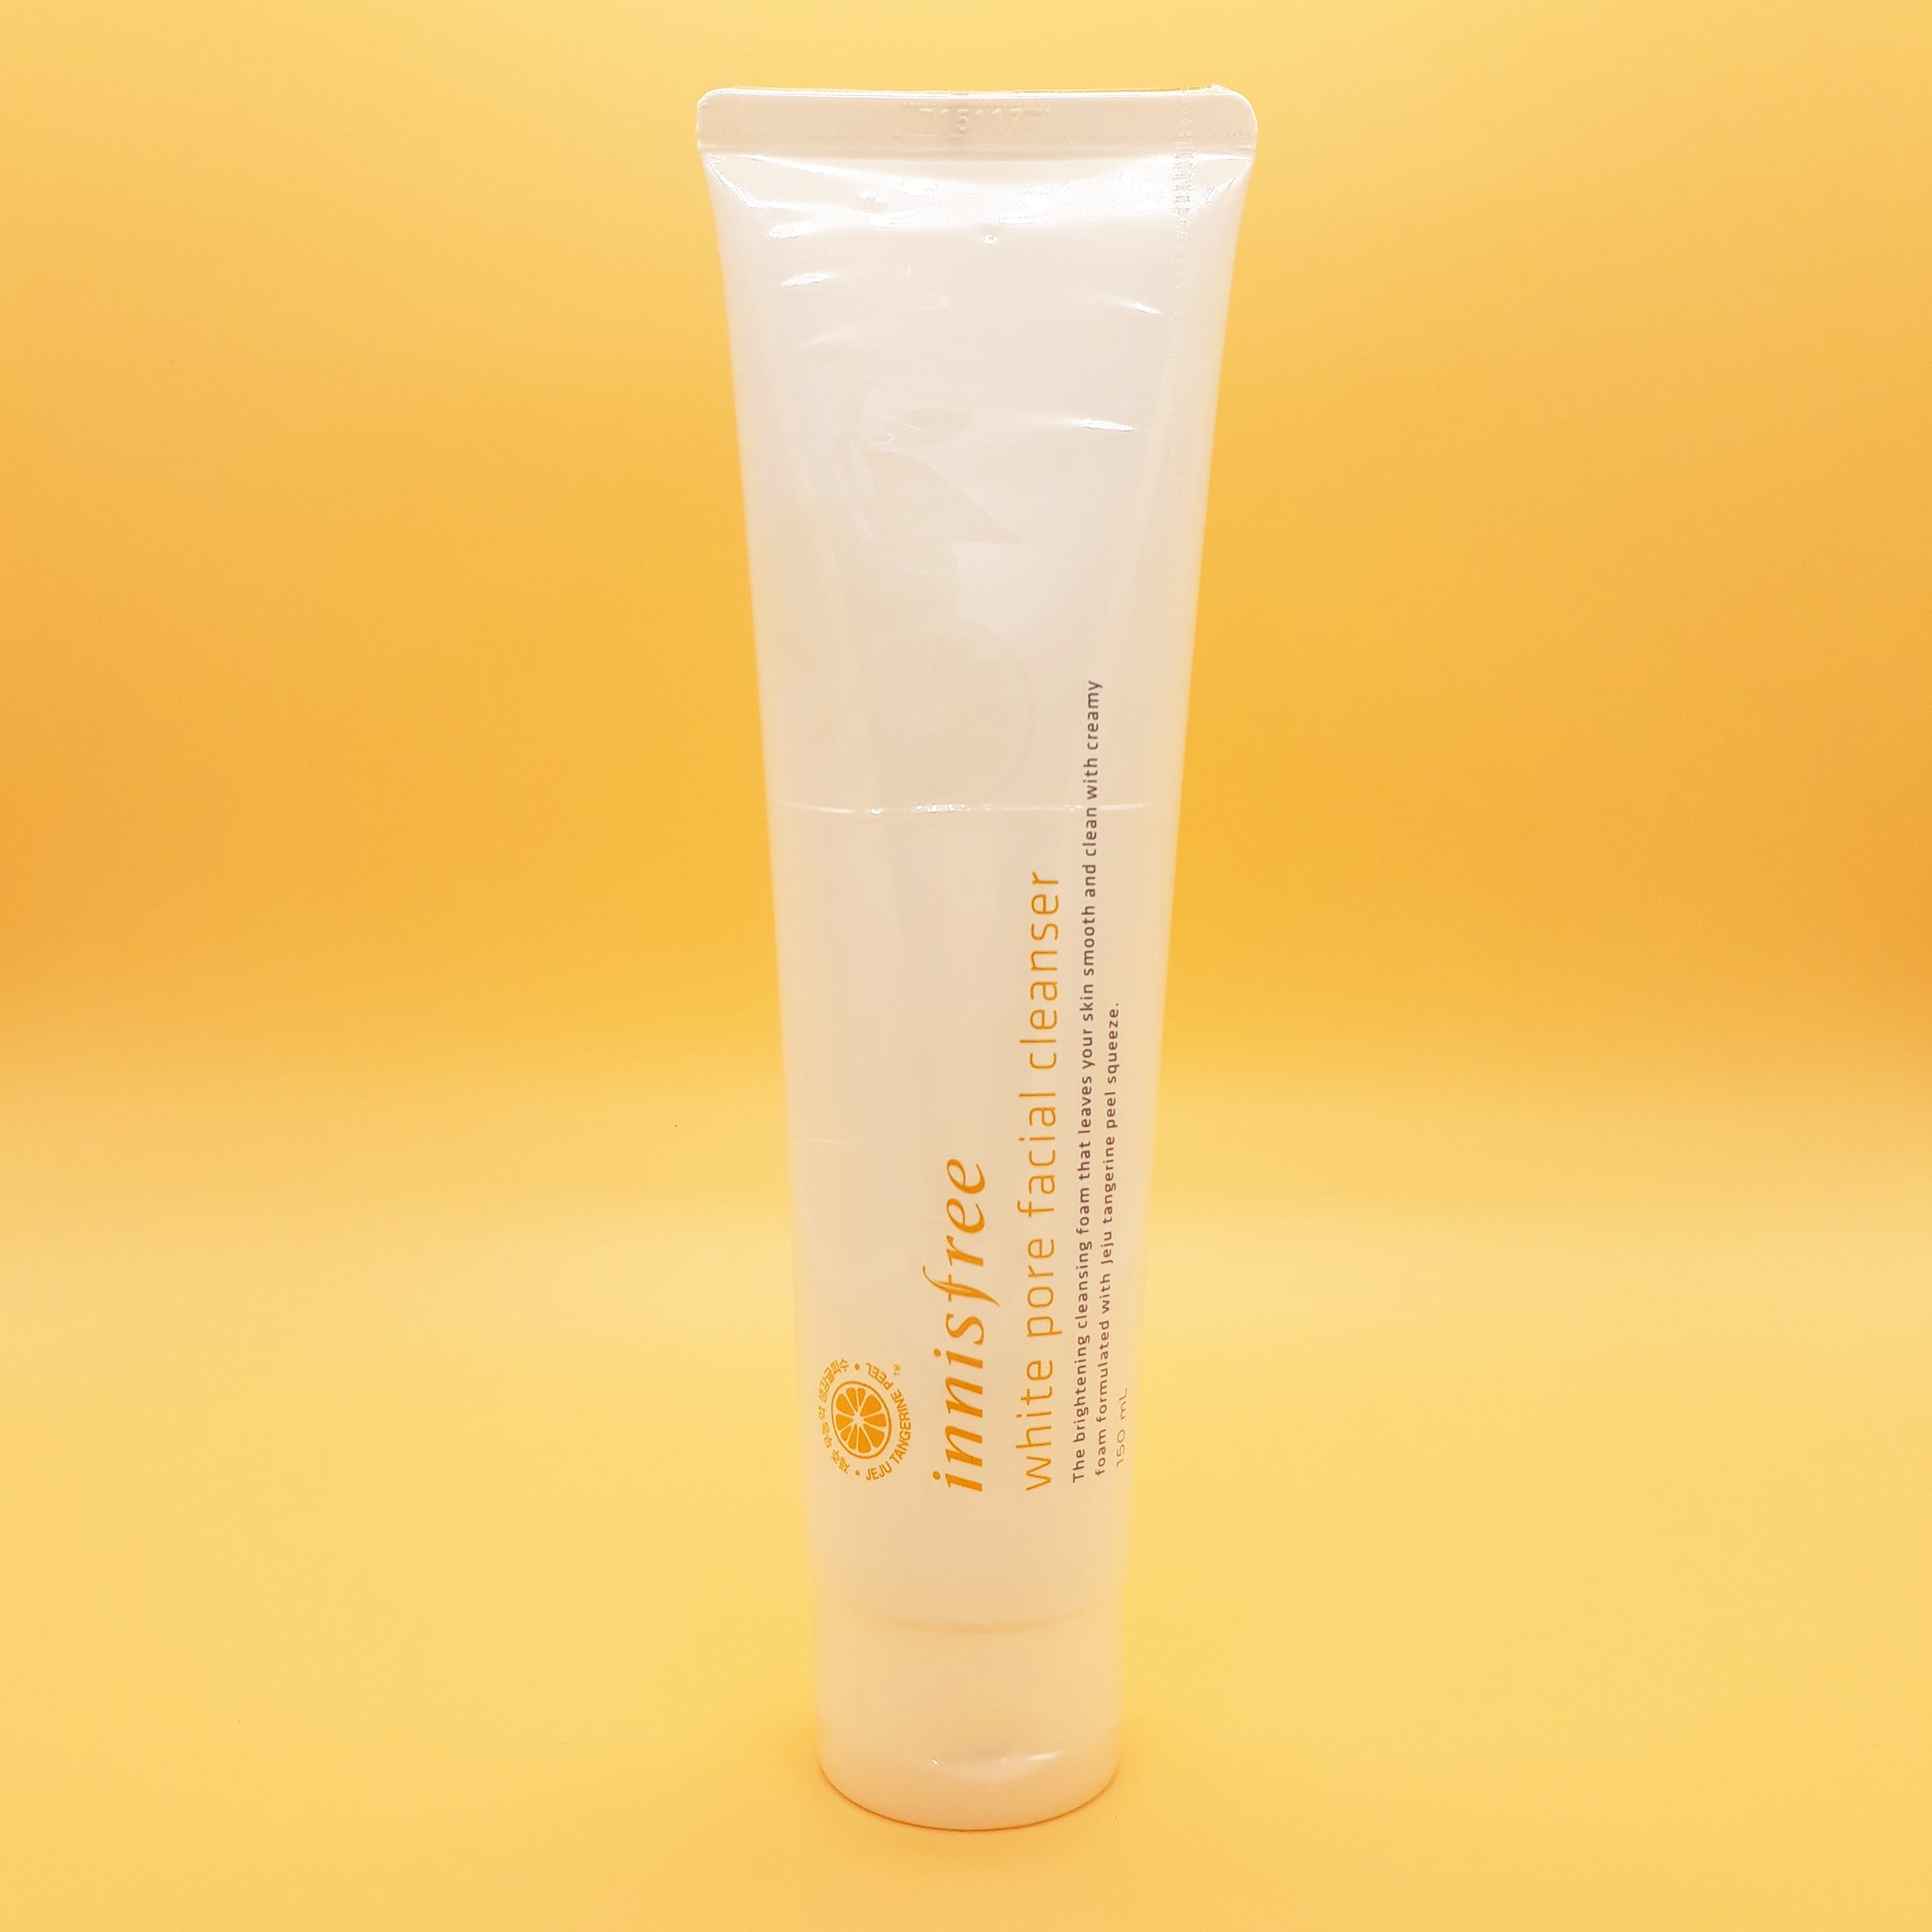 [REVIEW] SỮA RỬA MẶT INNISFREE WHITE PORE FACIAL CLEANSER